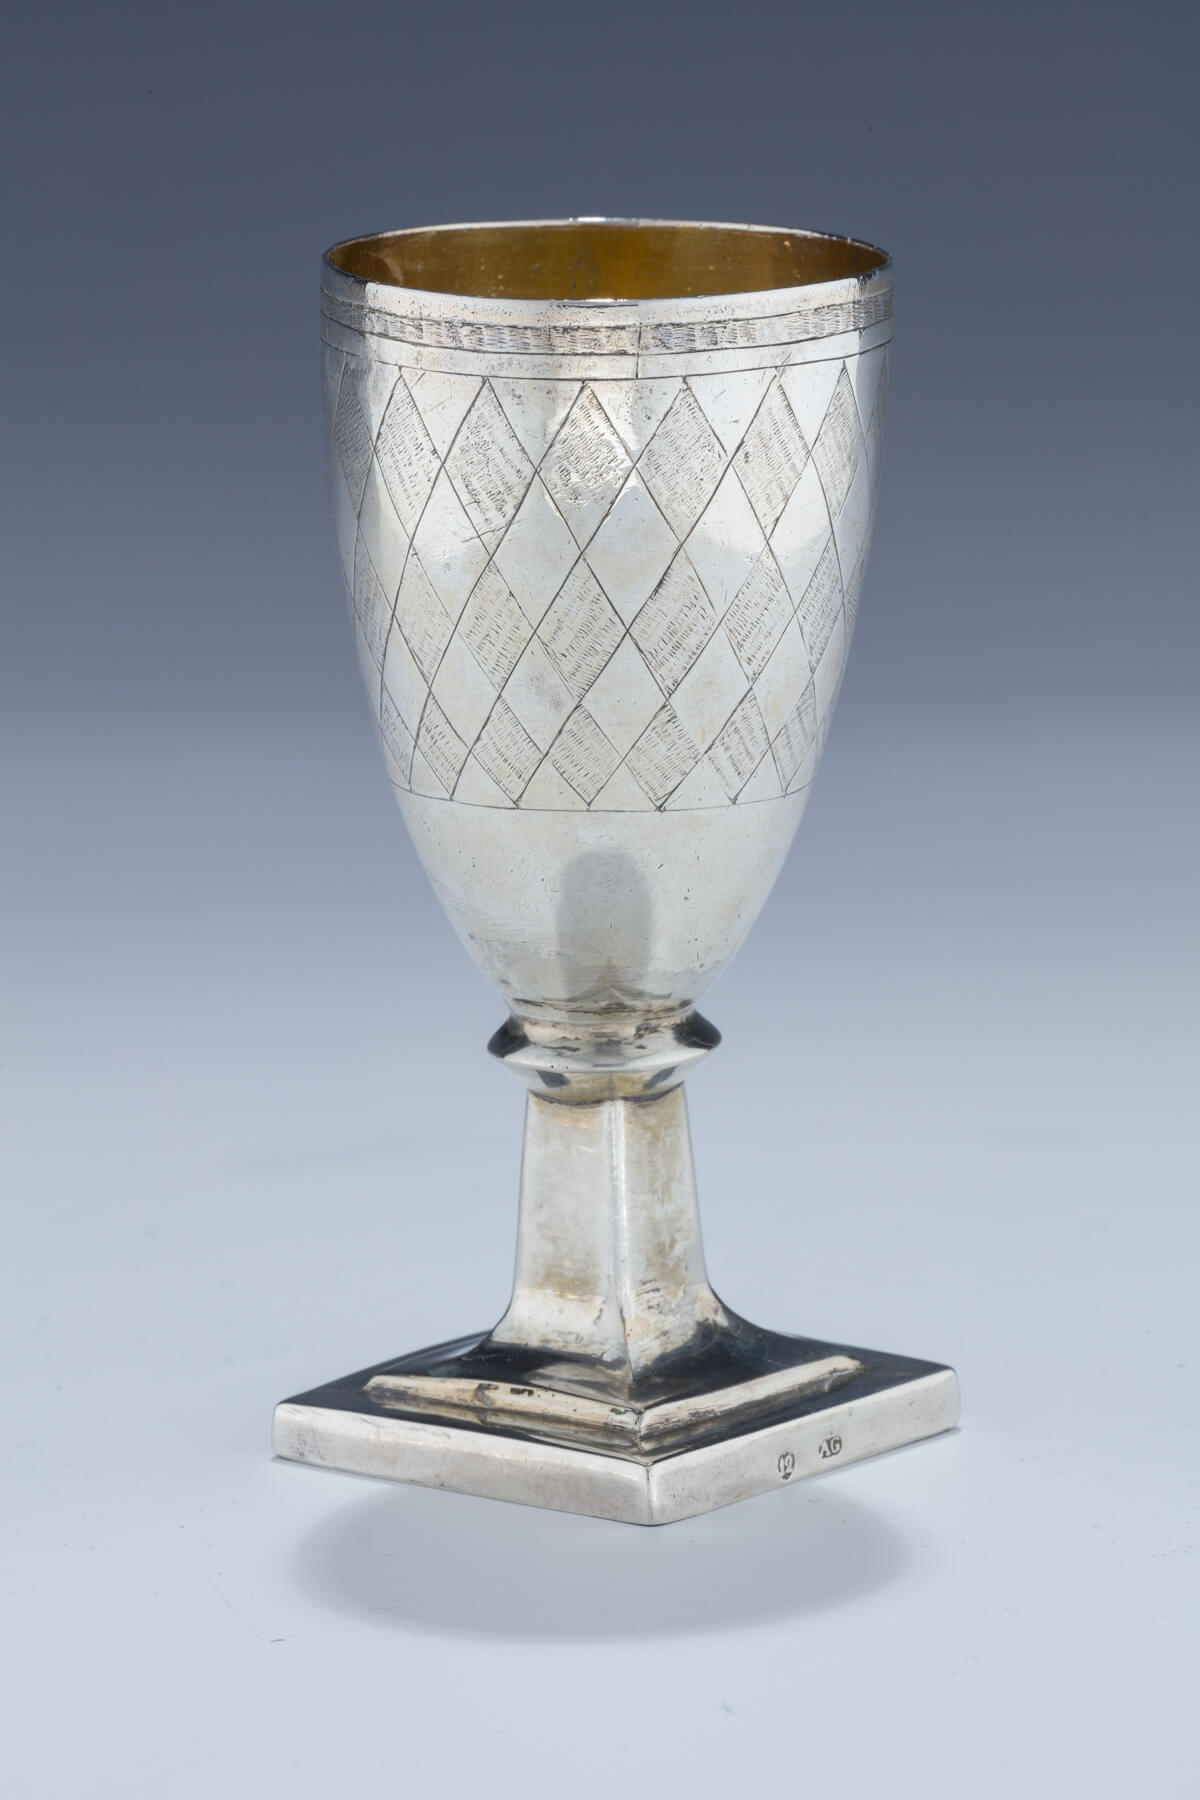 102. A Large Silver Kiddush Goblet